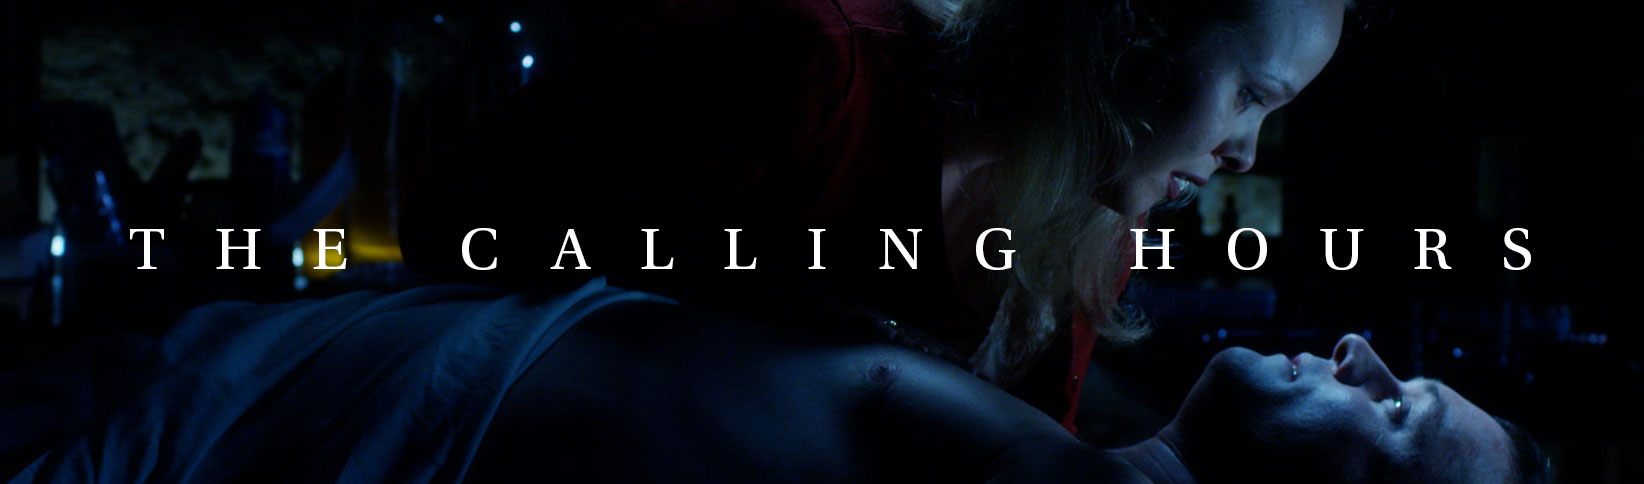 The Calling Hours